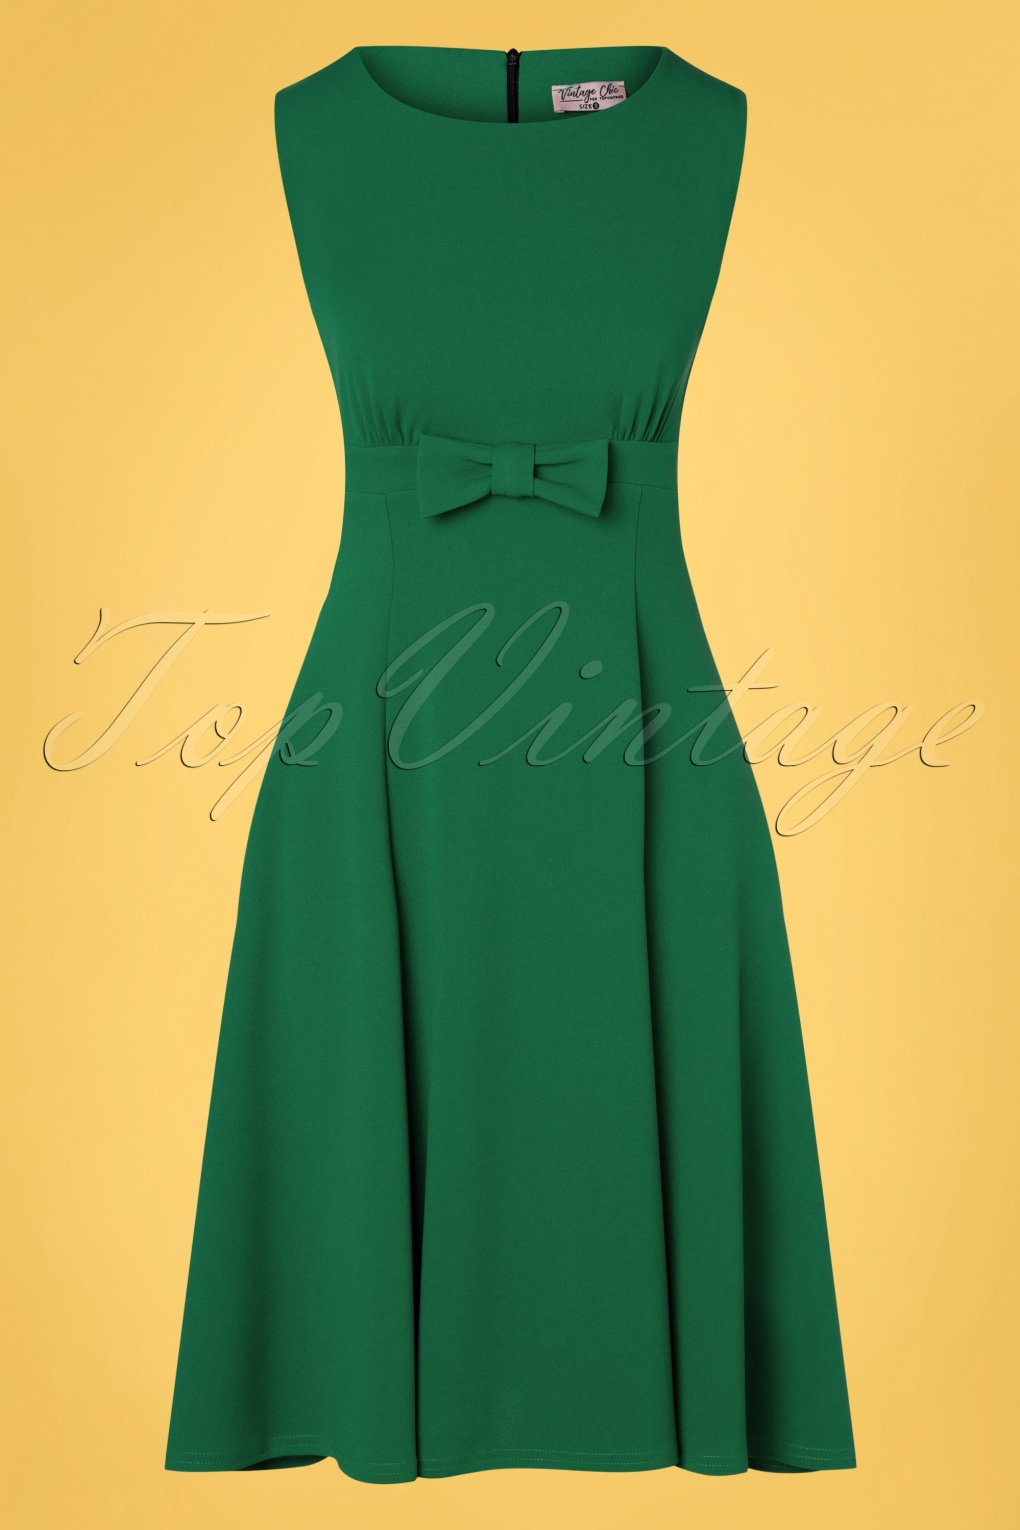 60s Dresses | 1960s Dresses Mod, Mini, Hippie 50s Daborah Bow Swing Dress in Emerald Green £48.27 AT vintagedancer.com